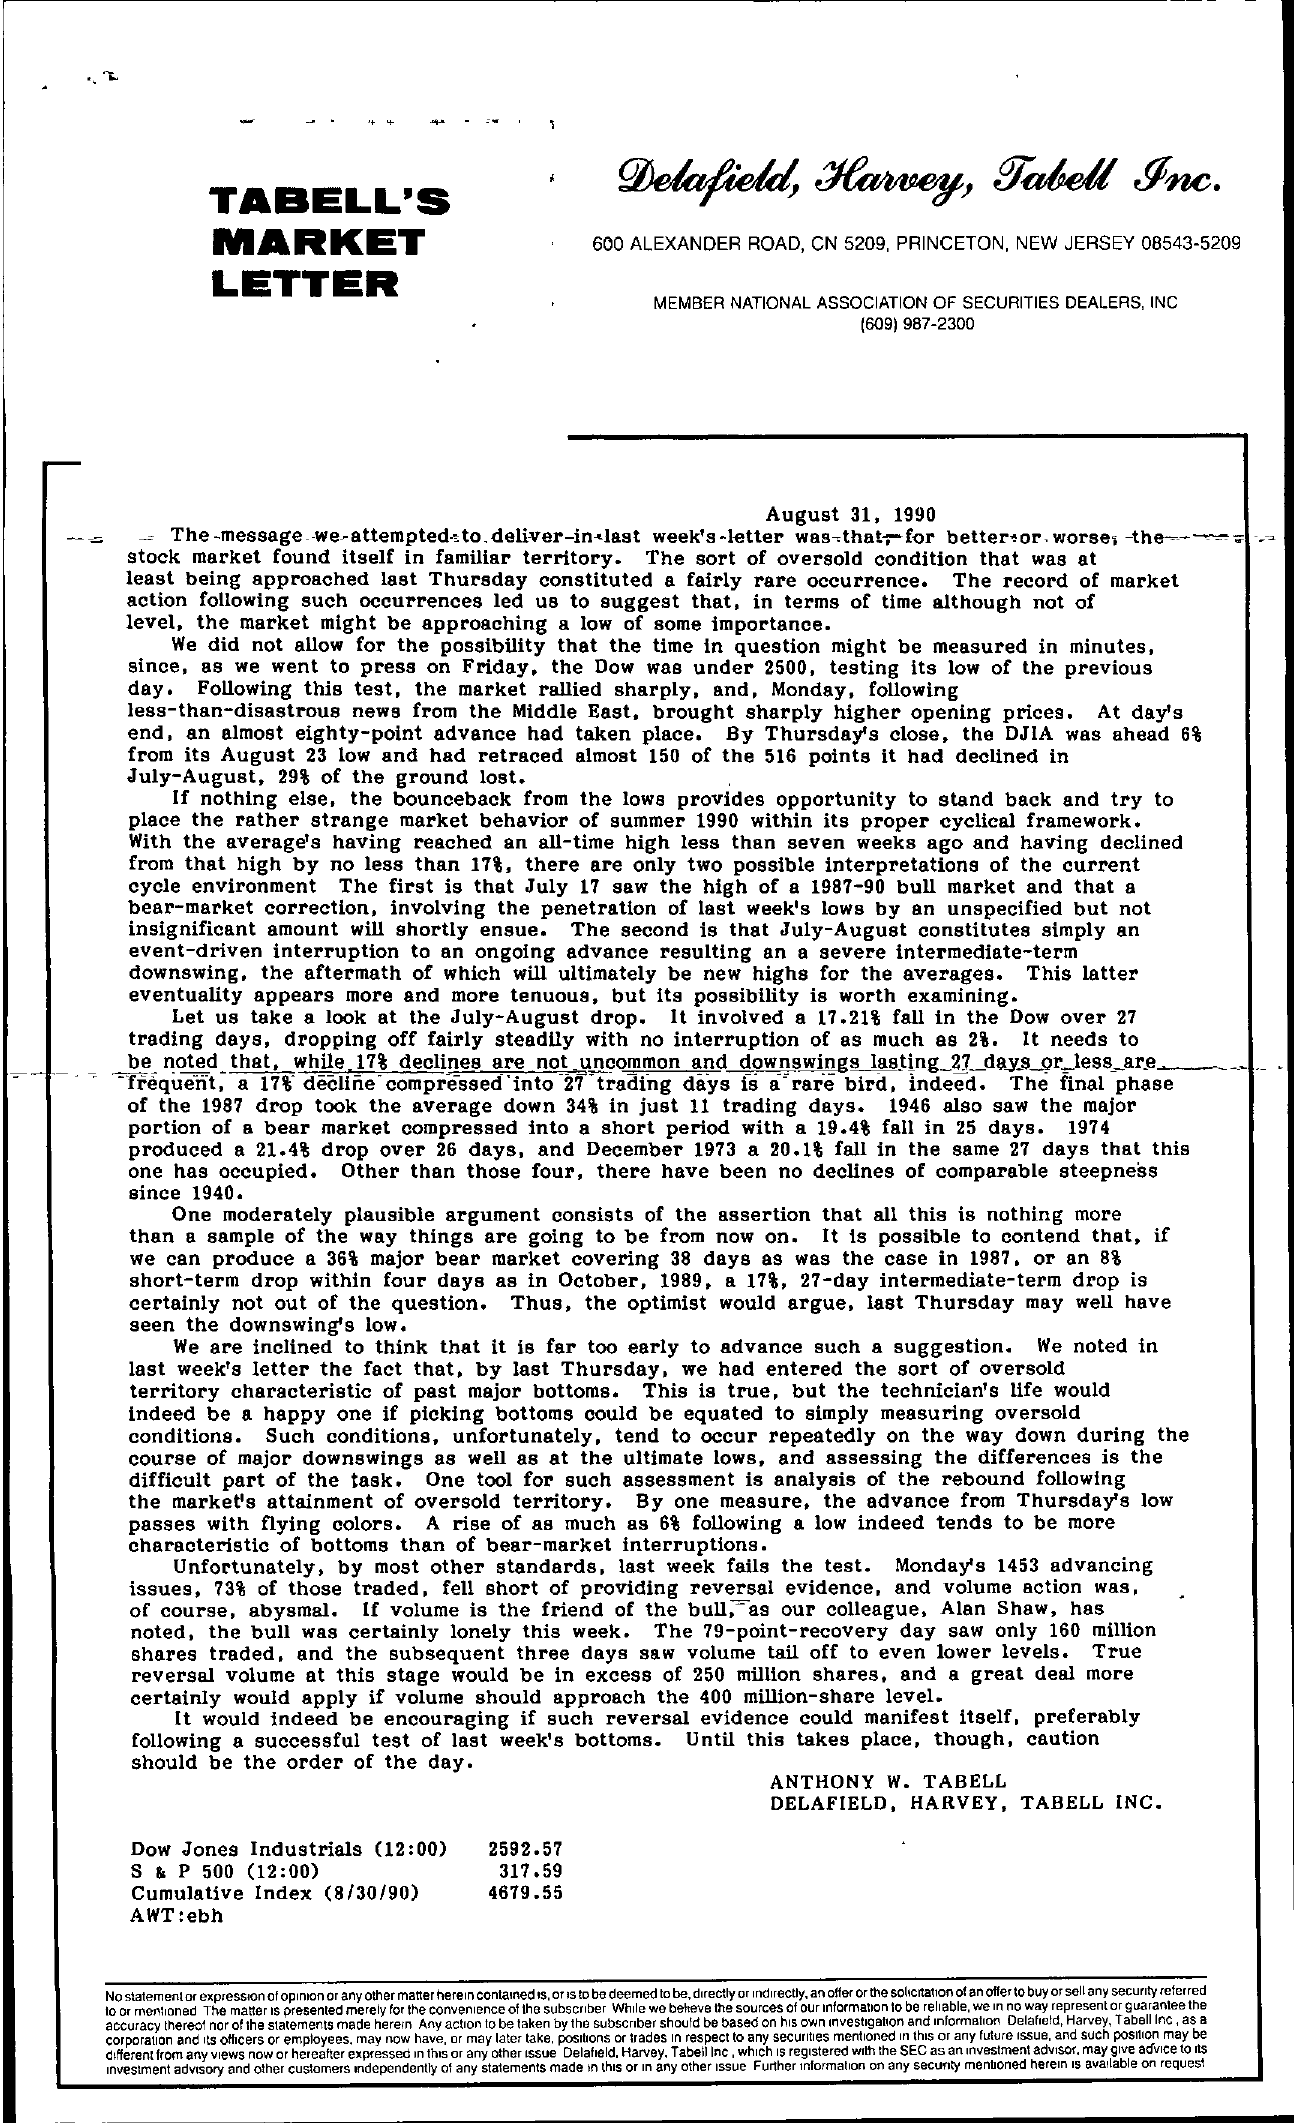 Tabell's Market Letter - August 31, 1990